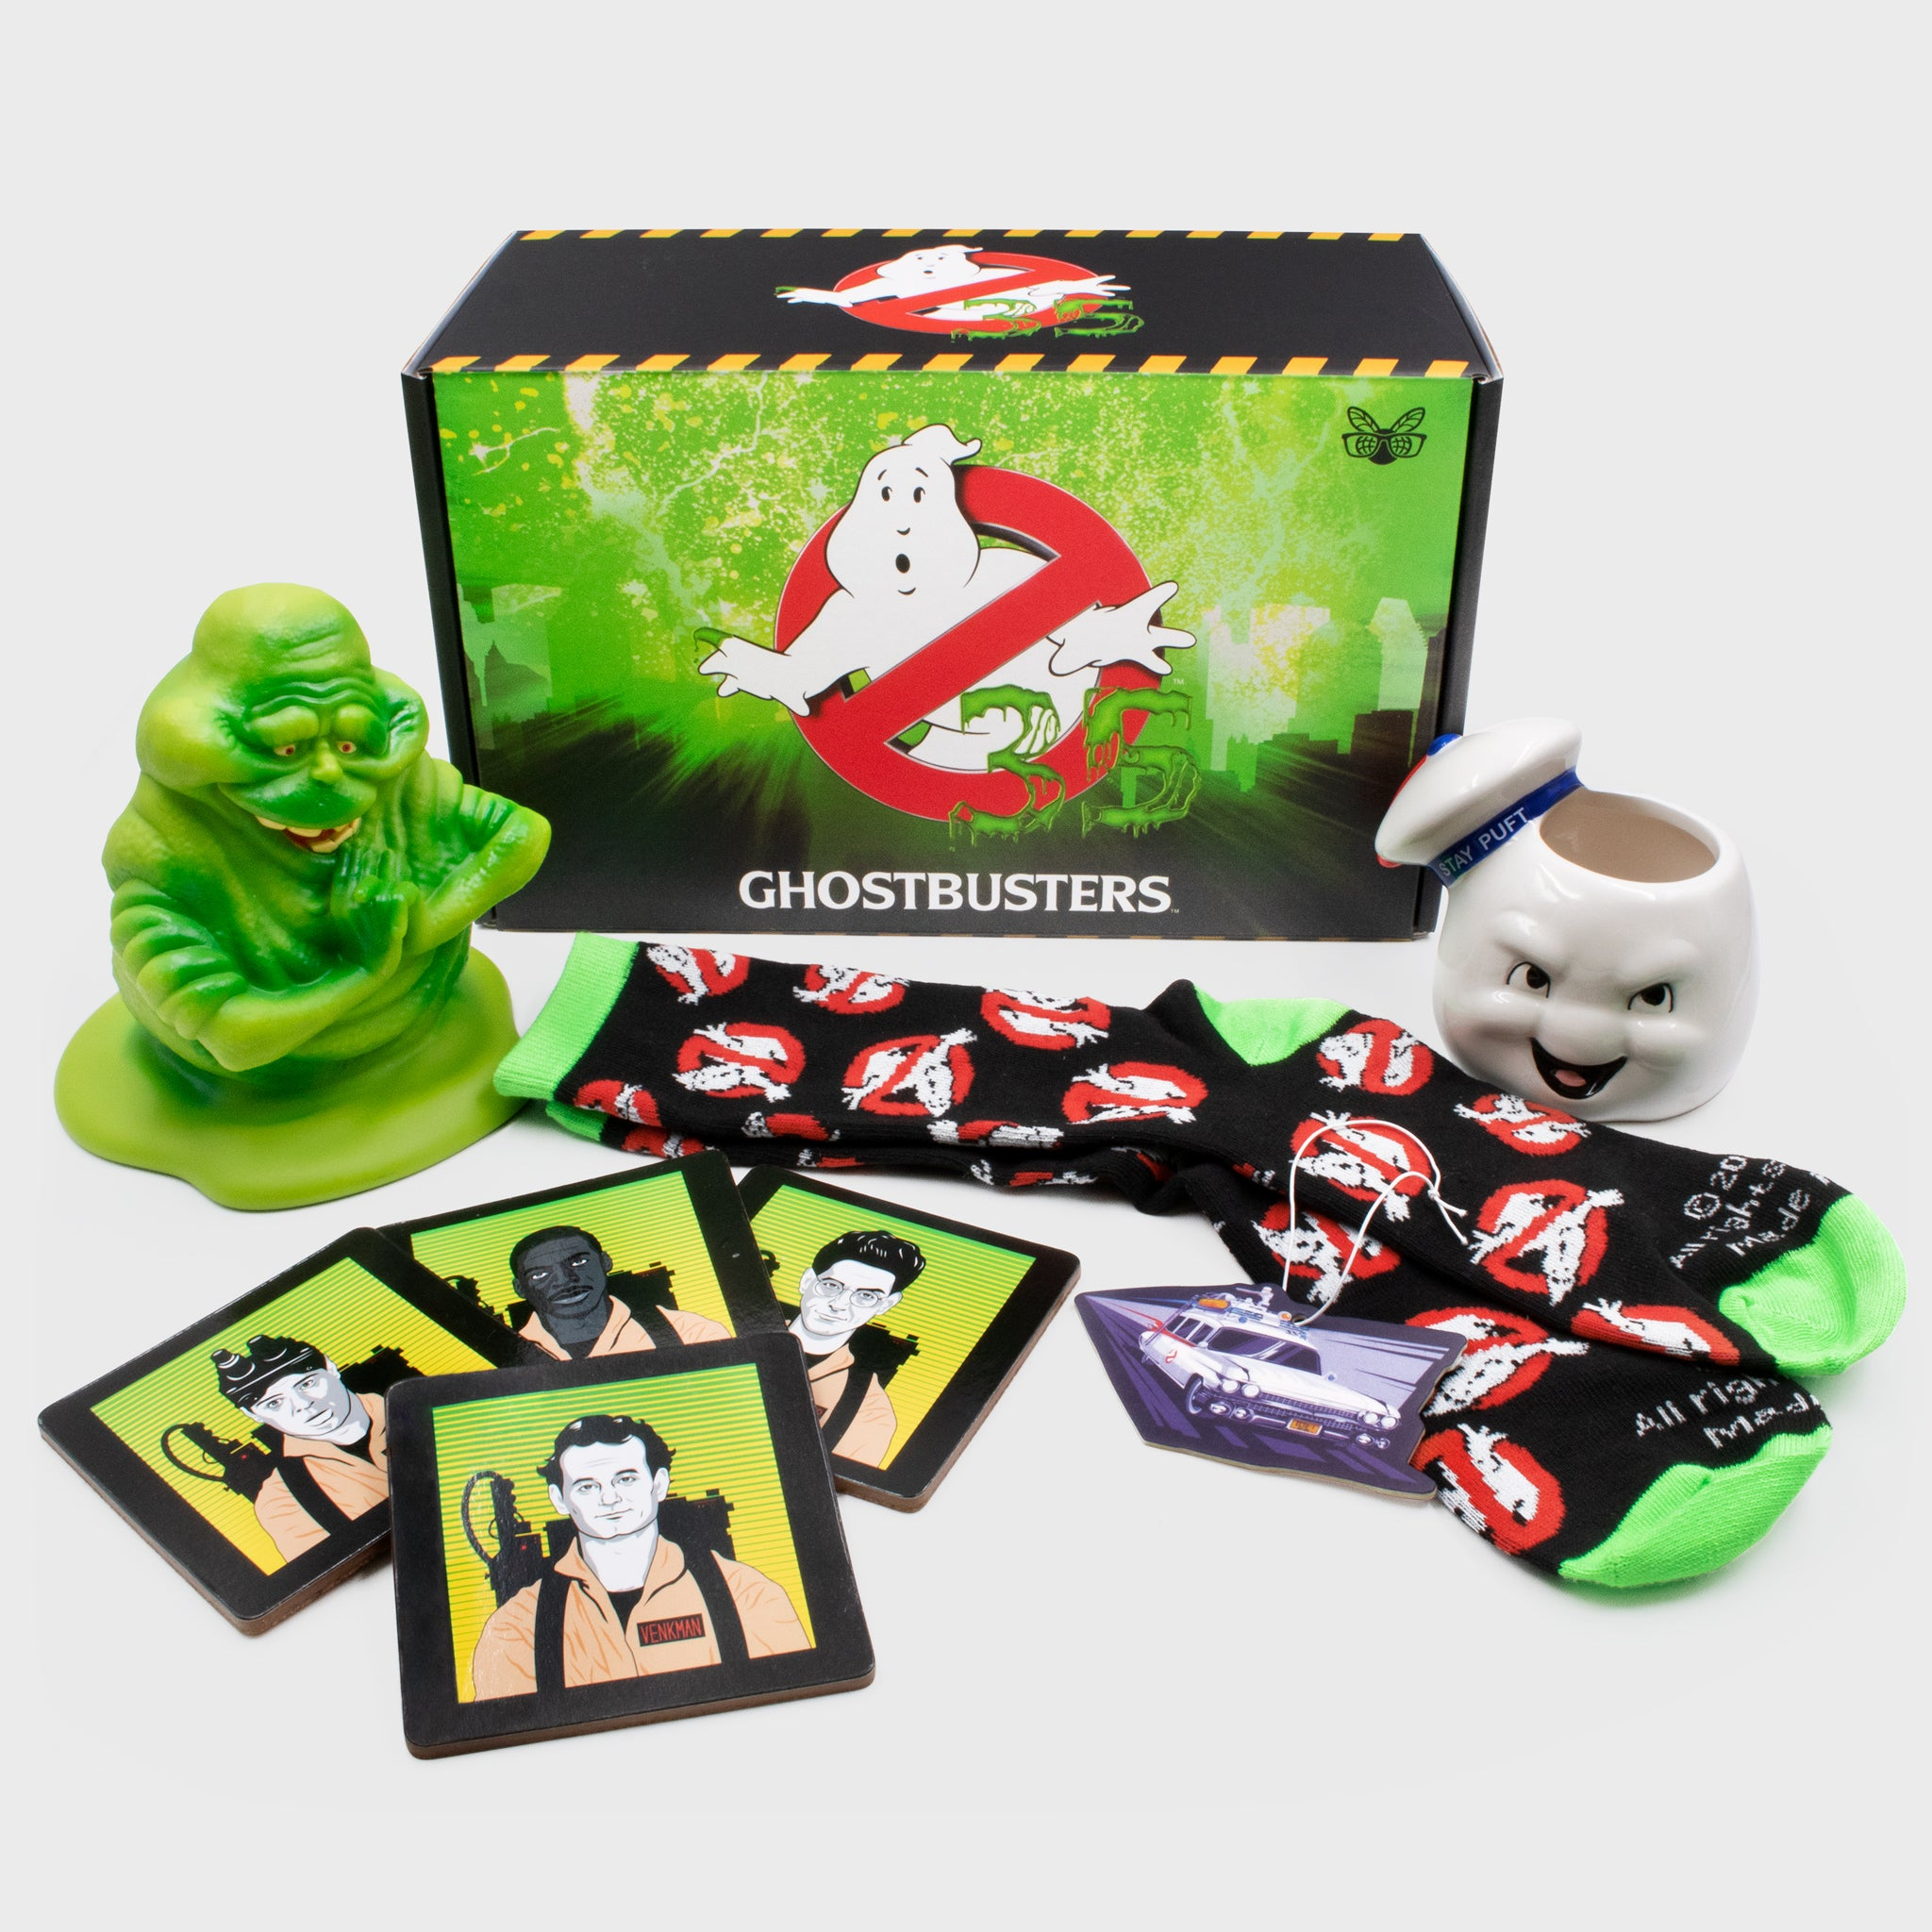 ghostbusters classic 35th anniversary movie ghosts slimer collectors box exclusive collectible culturefly vinyl figure planter stay puft coaster set socks air freshner